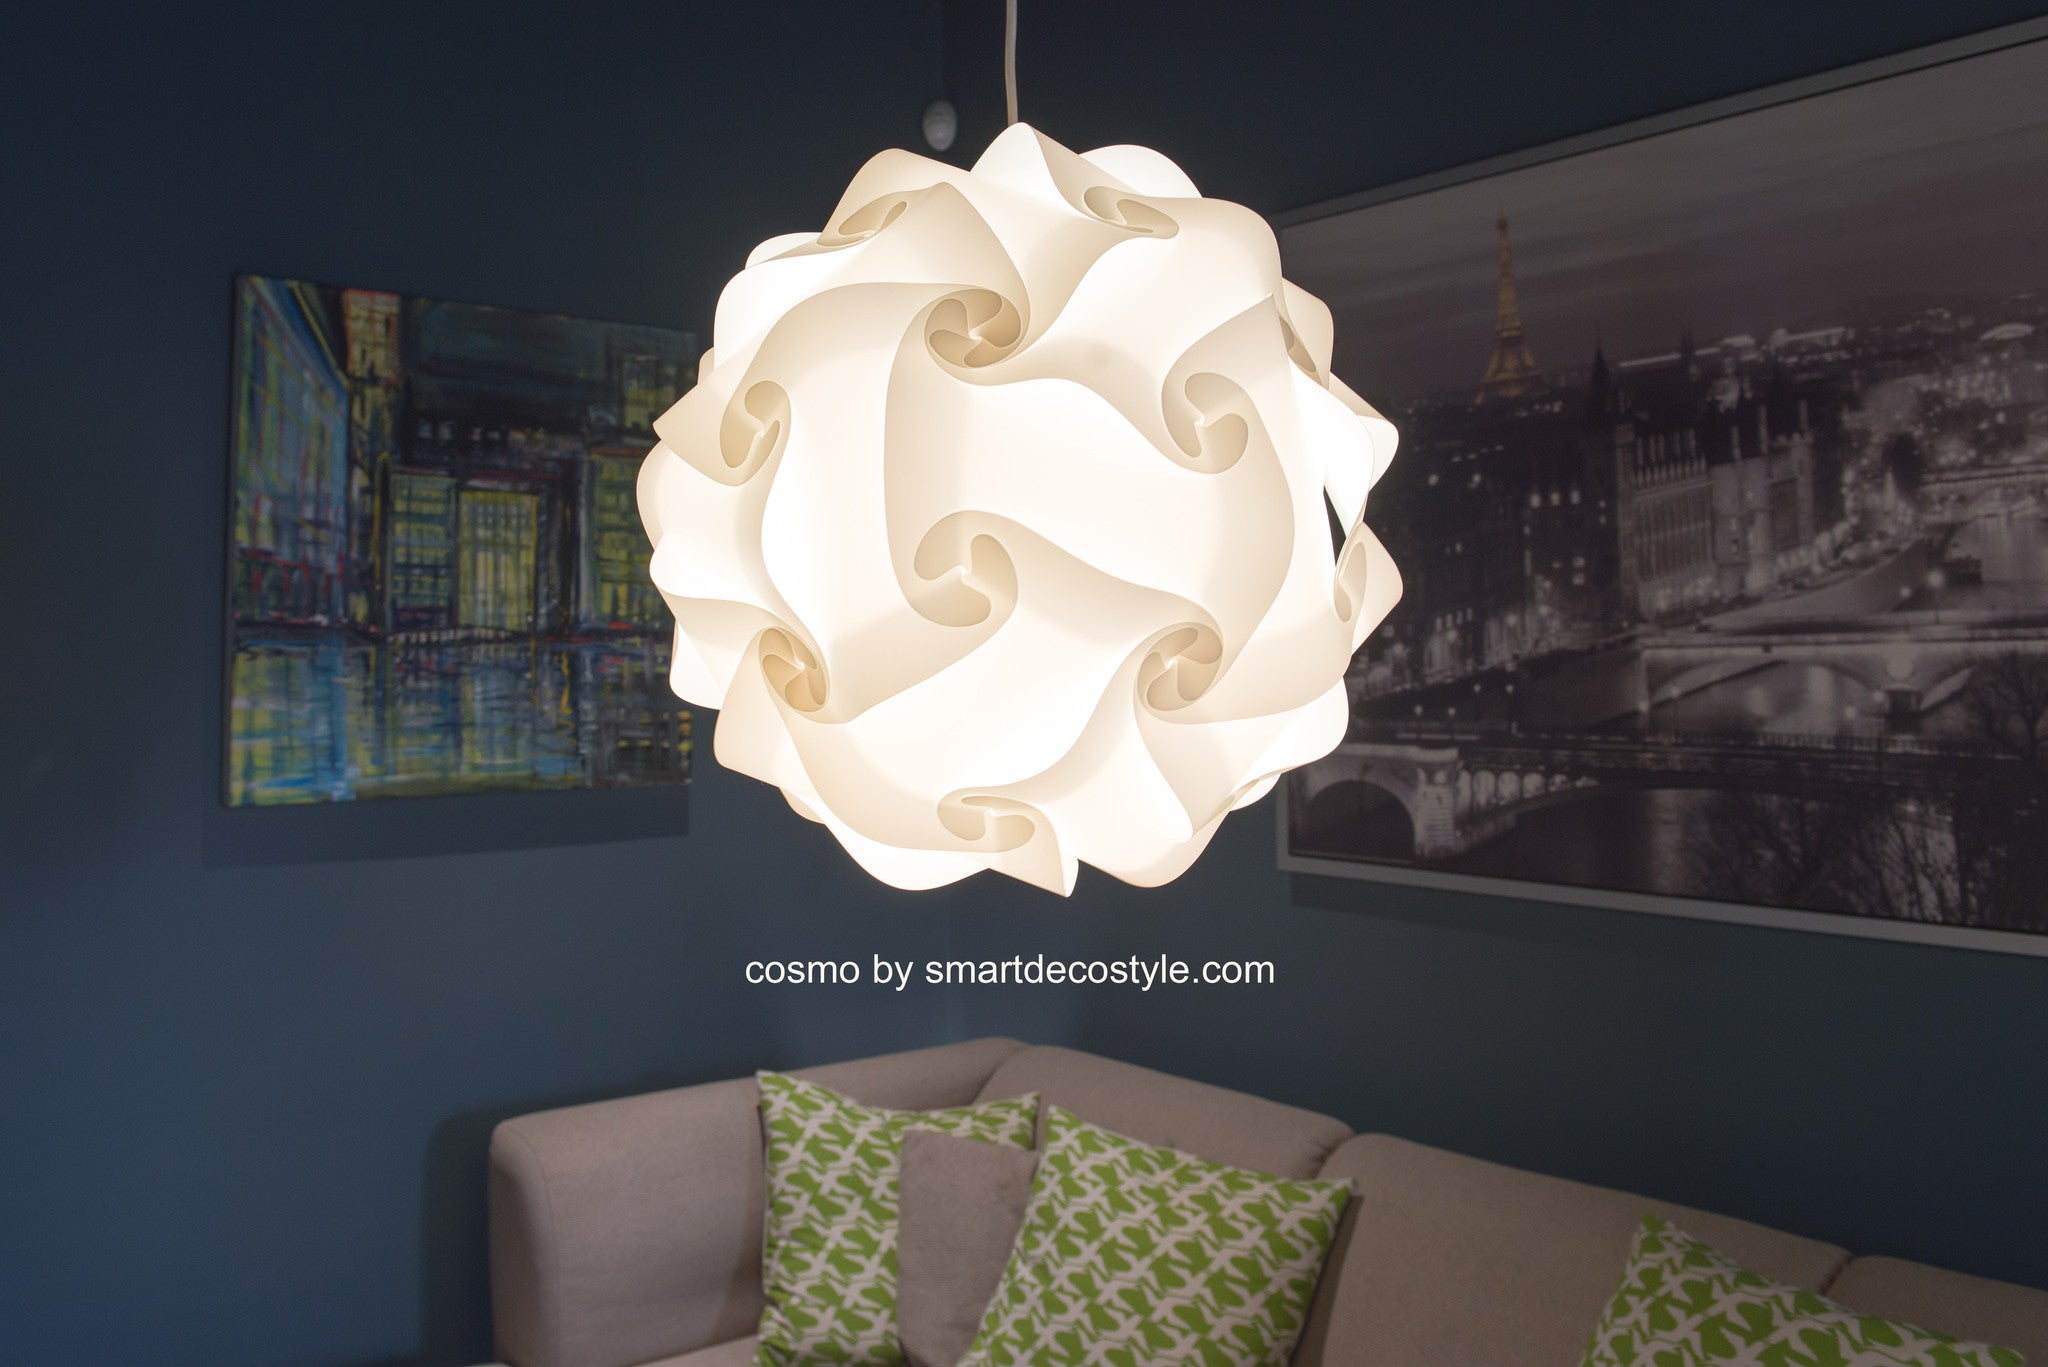 Smarty Lamps Cosmo Light Shade  Smart Deco Homeware Lighting and Art by Jacqueline hammond